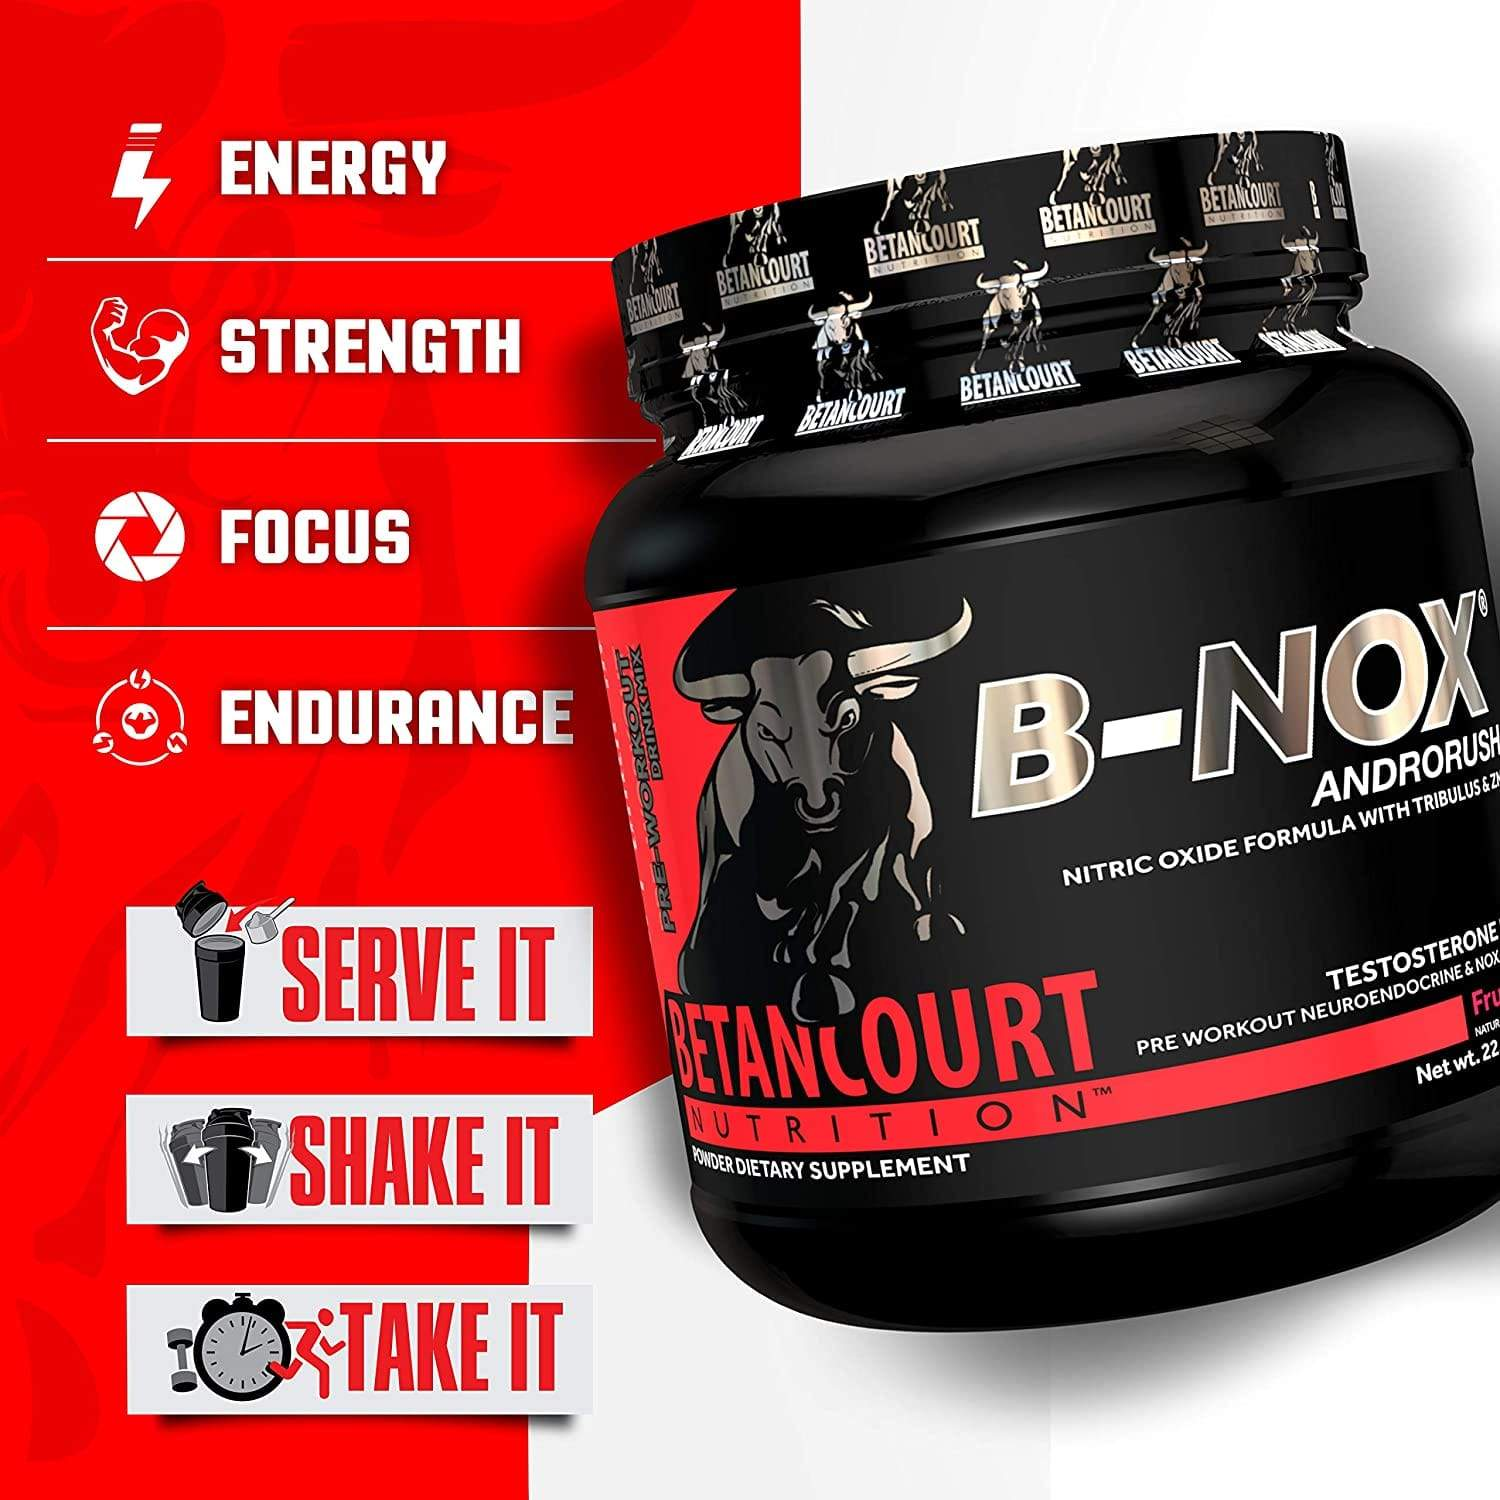 B-NOX ANDRORUSH - 35 SERVINGS - NutraCore Manalapan - Vitamin & Supplement and CBD Store